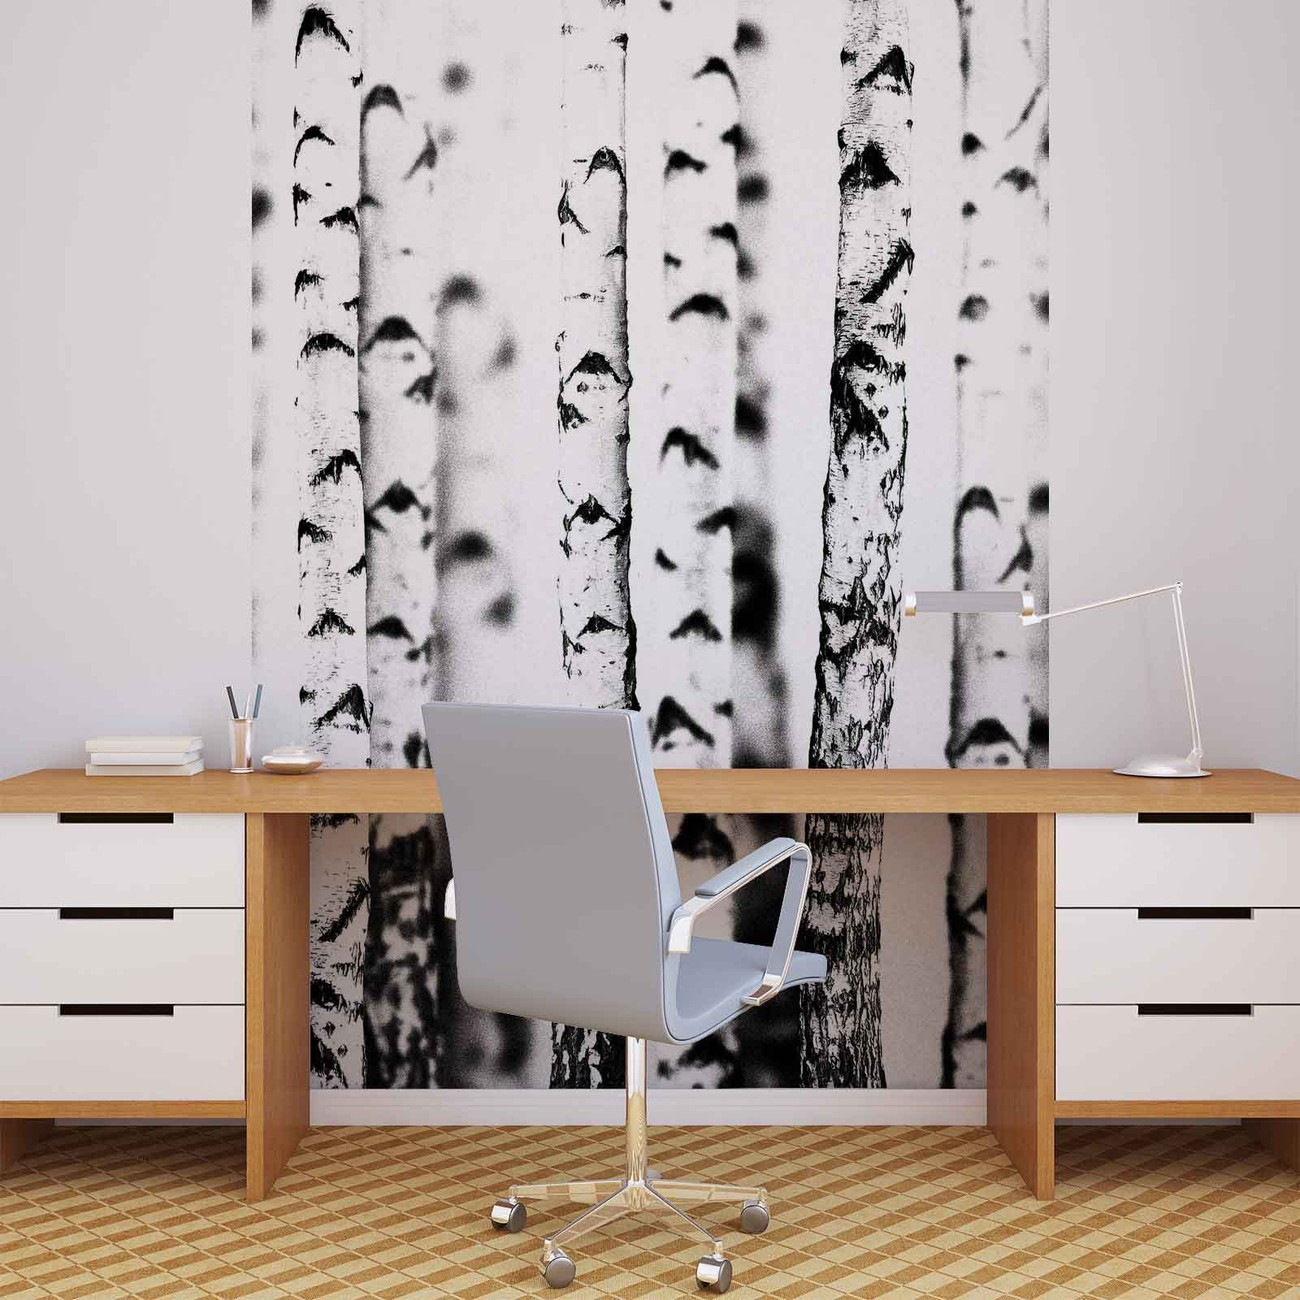 Birch trees wall paper mural buy at europosters for Birch trees wallpaper mural